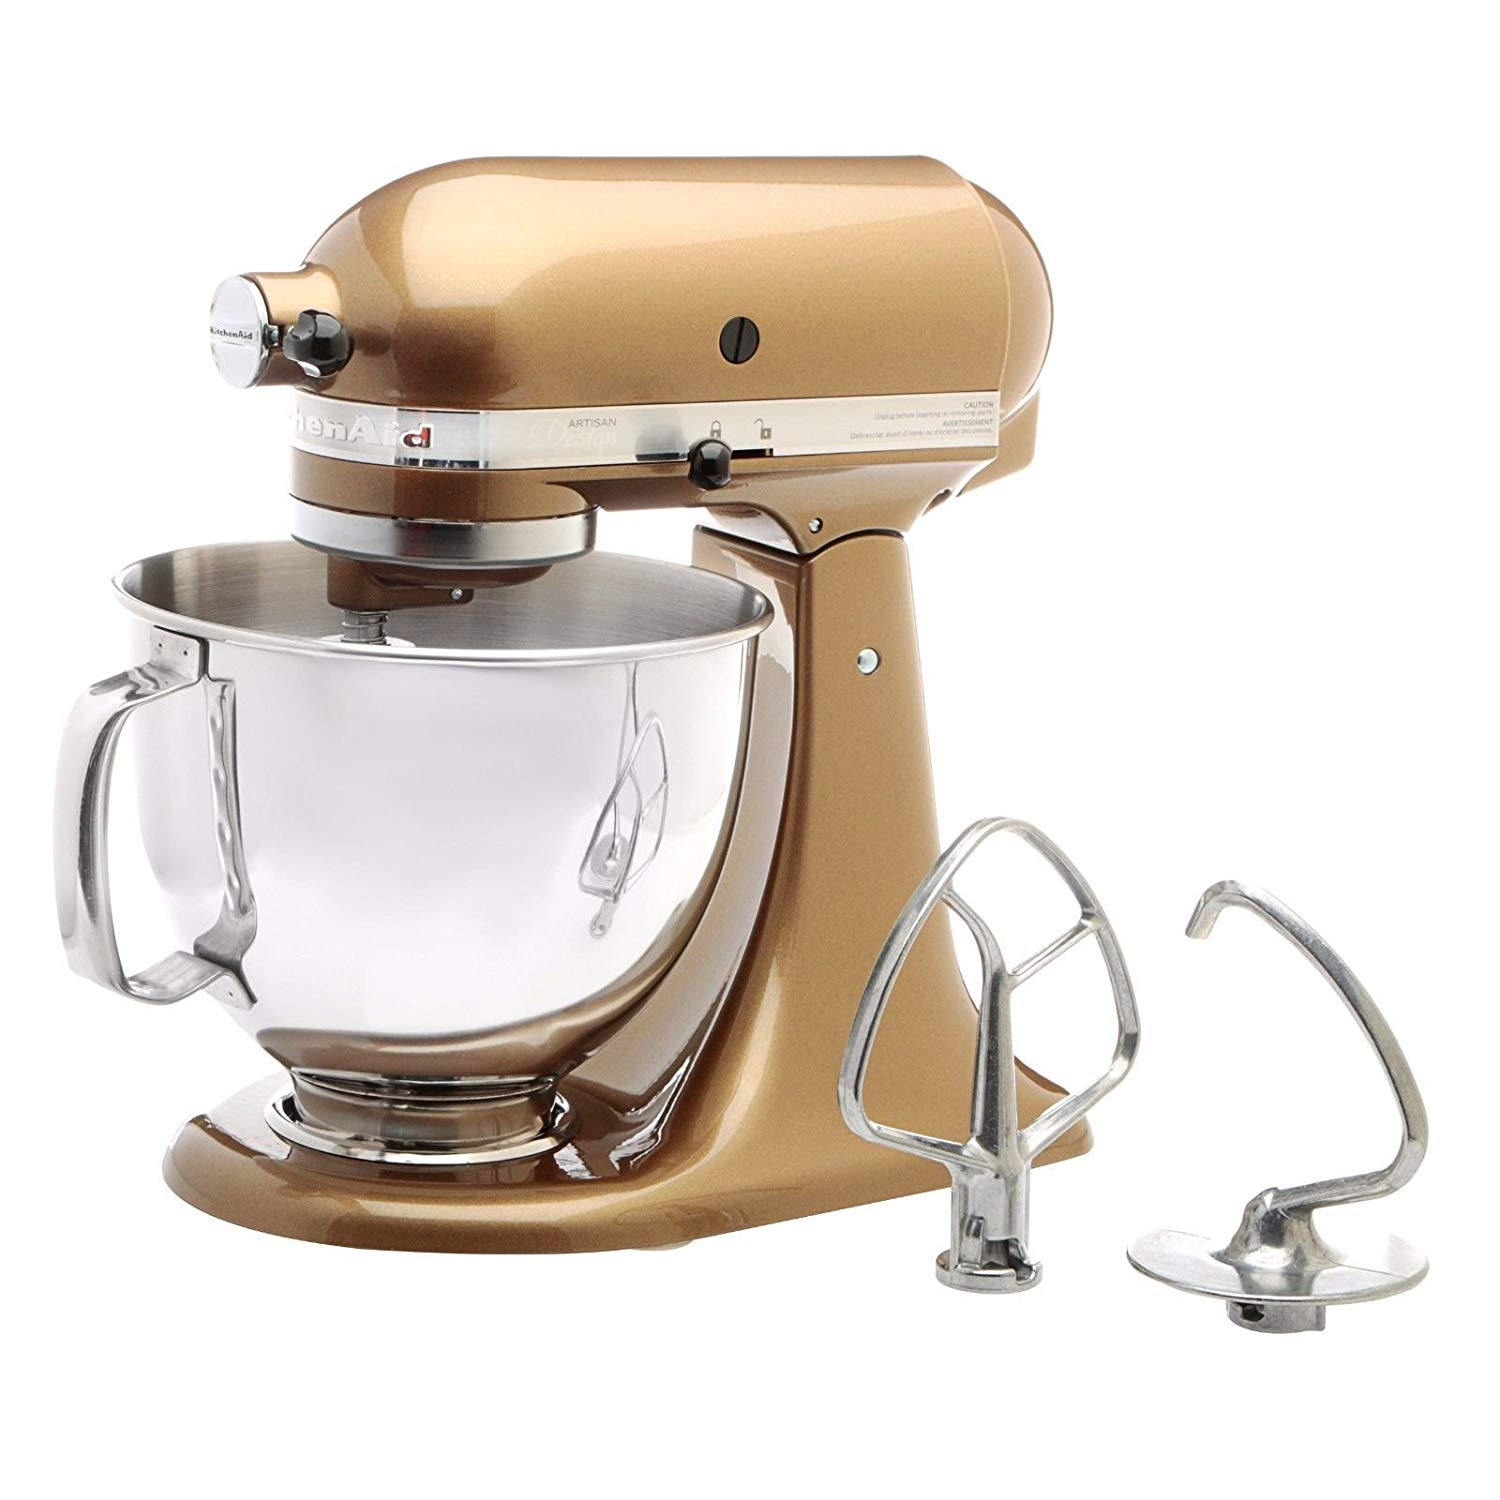 KitchenAid-Refurbished-Artisan-Series-5-Quart-Tilt-Head-Stand-Mixer-RRK150 thumbnail 83